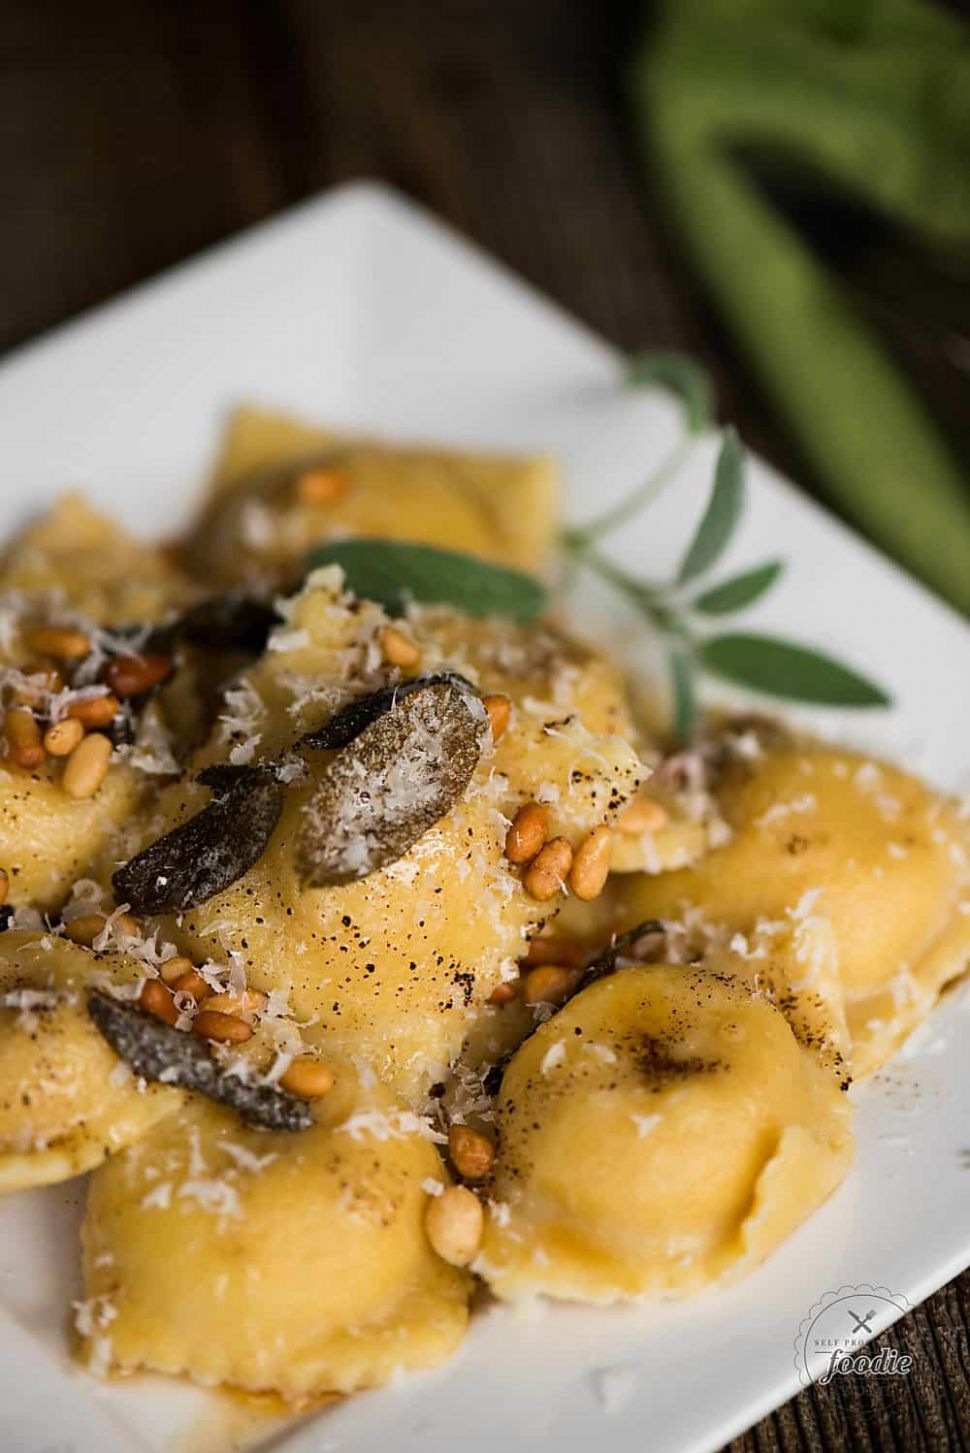 Homemade Butternut Squash Ravioli with Brown Butter Sage Sauce